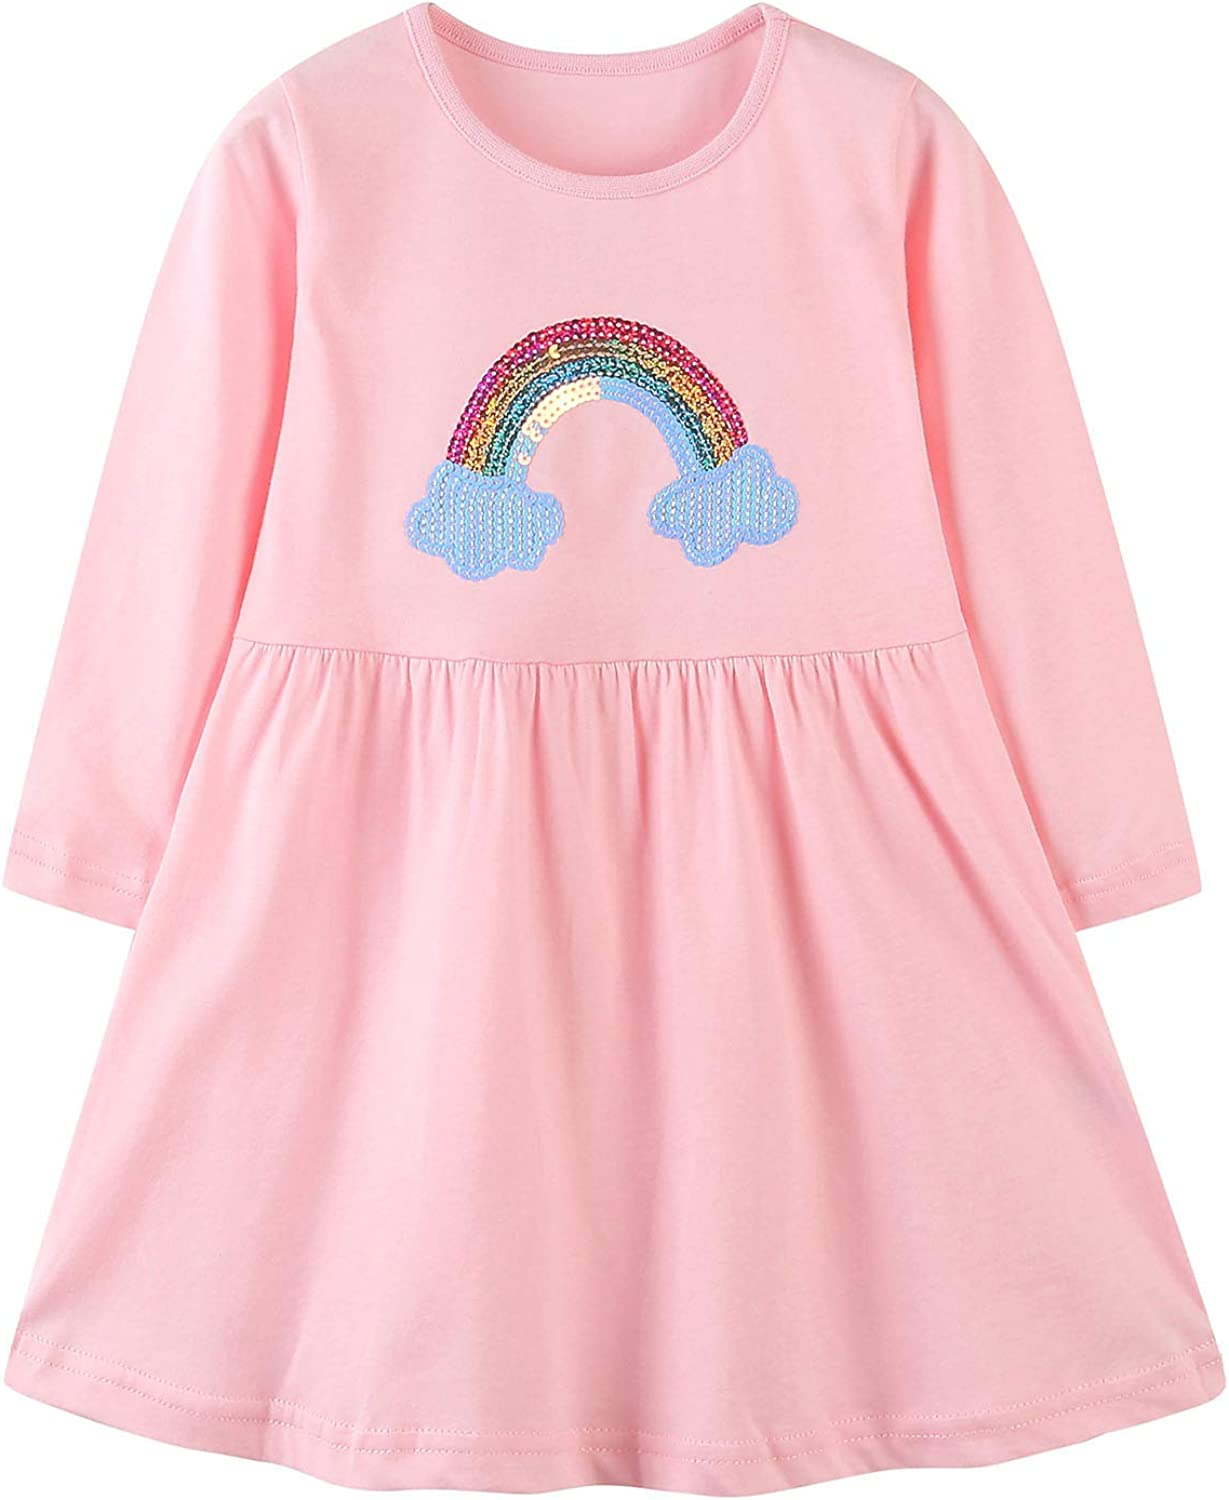 Bumeex Toddler Girl Clothes Cotton Long Sleeve Girls Dresses for Kids 1-7 Years